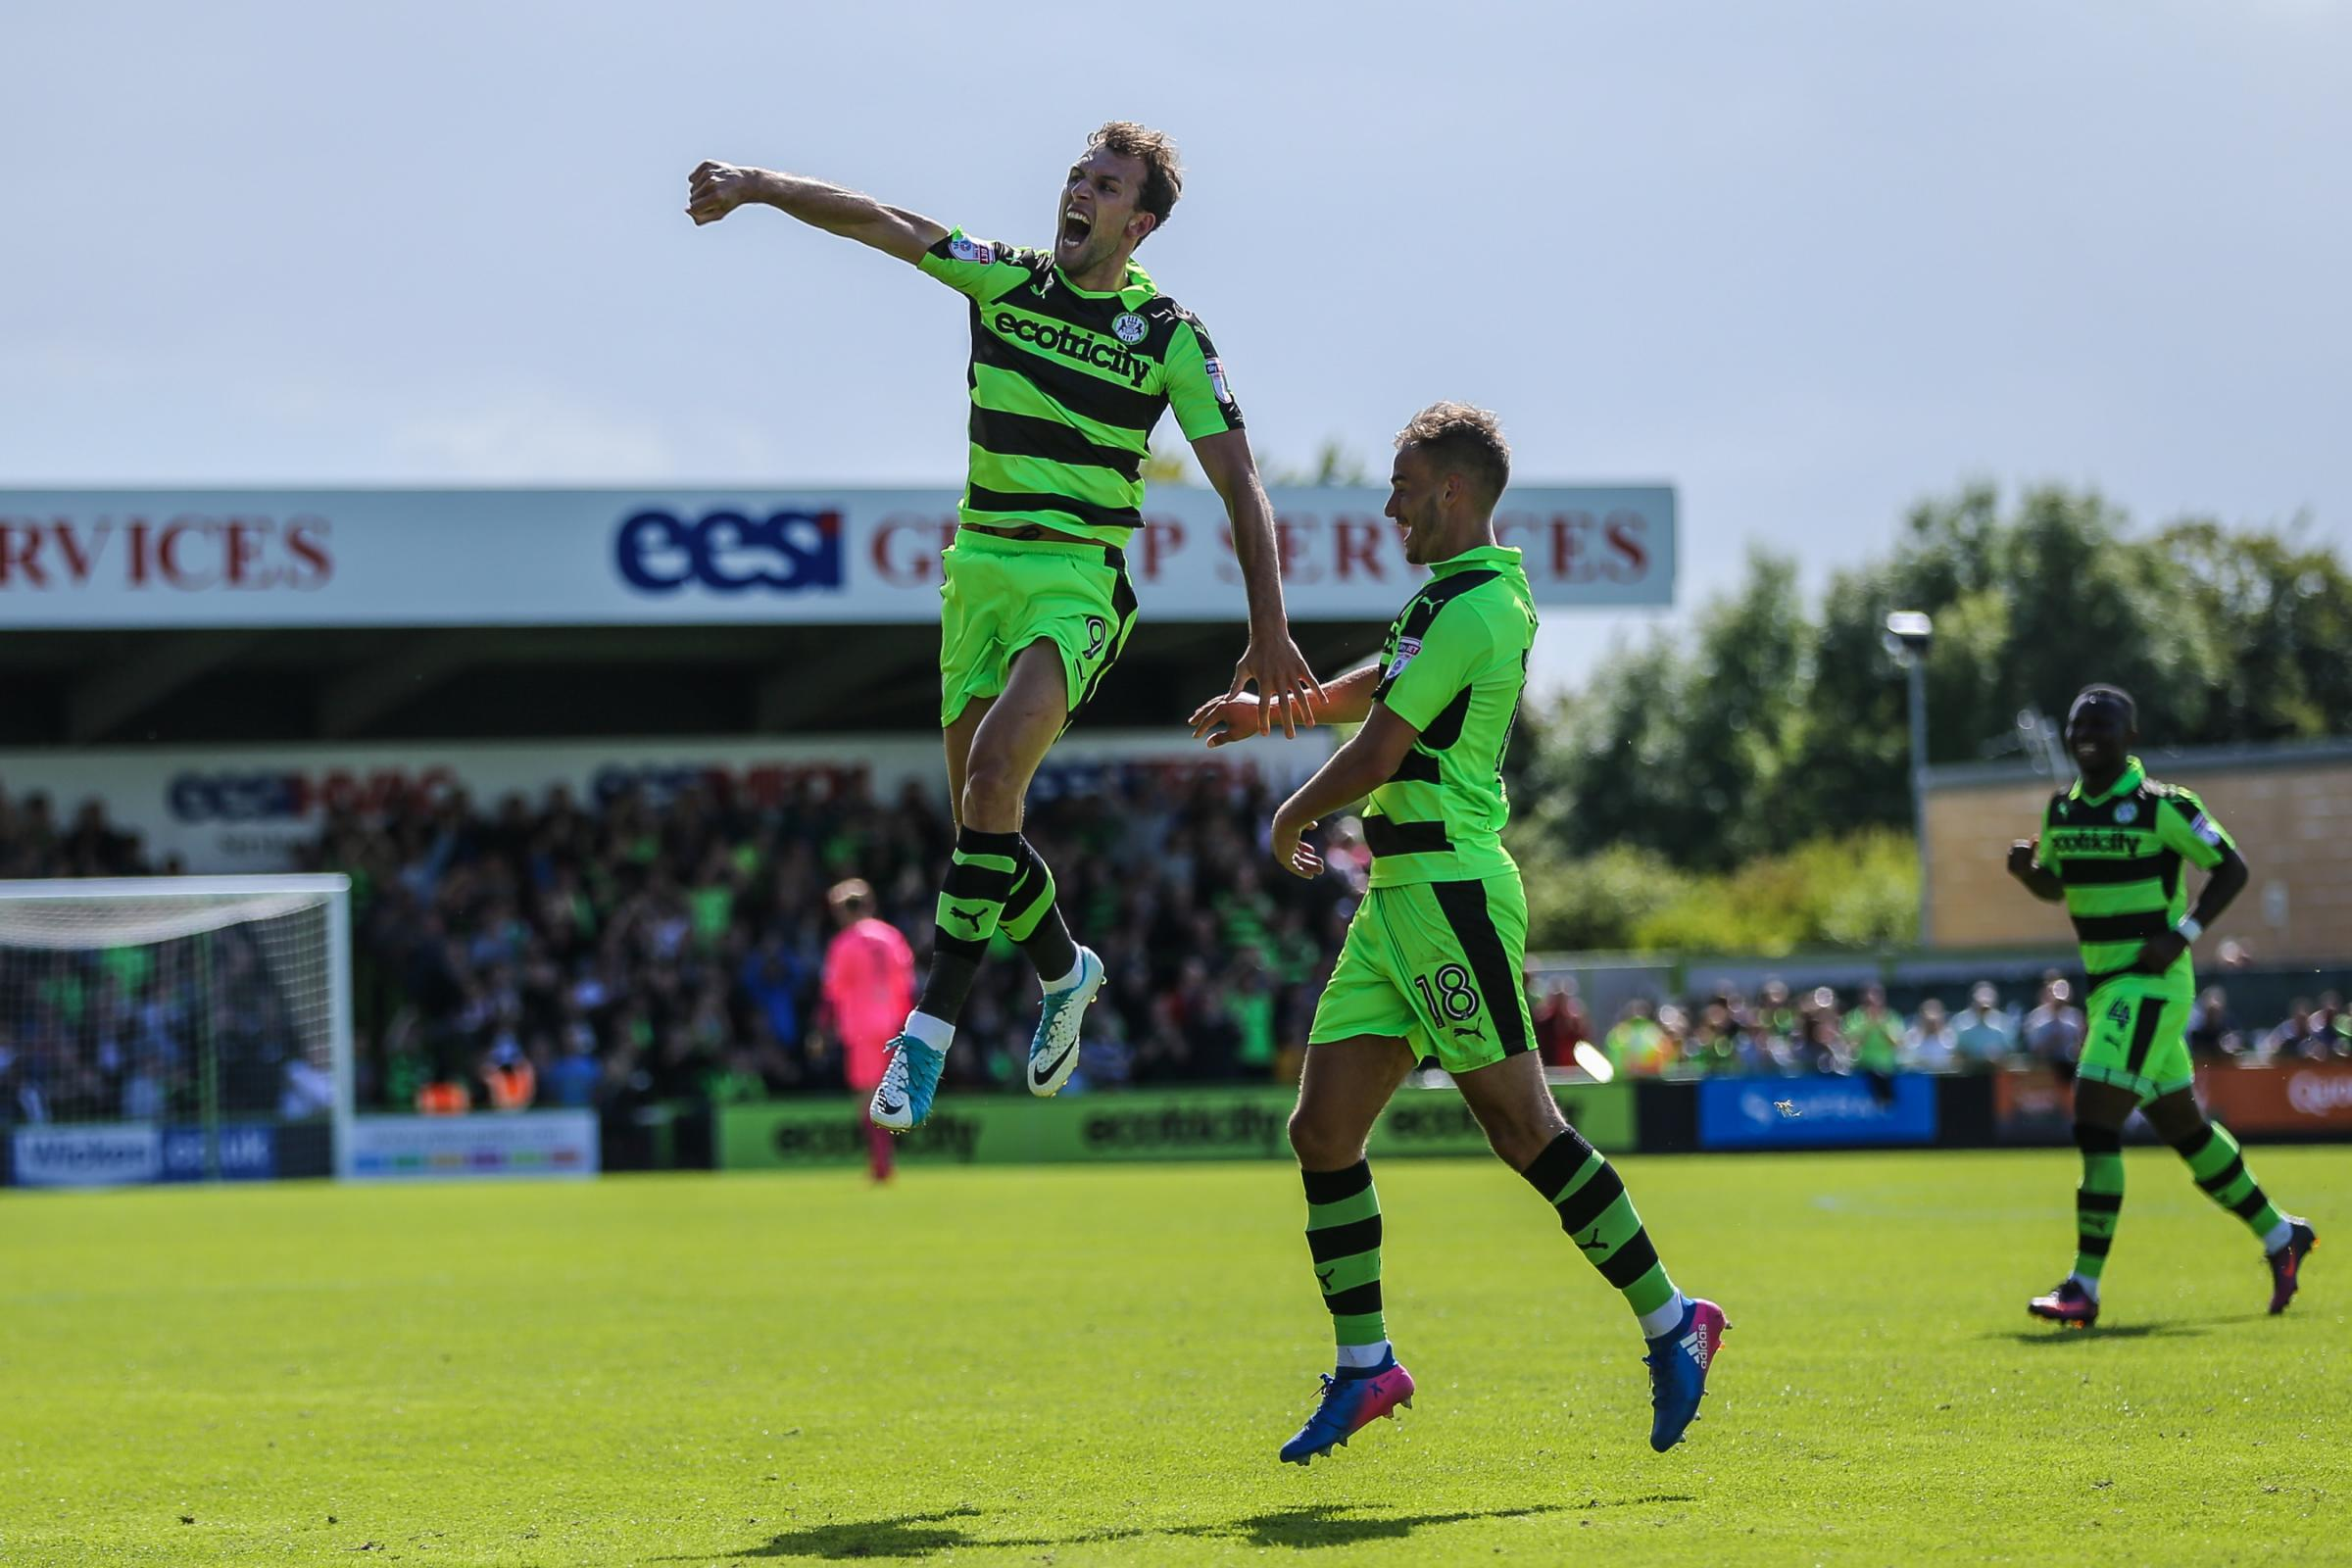 Forest Green Rovers Christian Doidge(9) scores Forest Green Rovers first ever league goal and celebrates, 1-0 during the EFL Sky Bet League 2 match between Forest Green Rovers and Barnet at the New Lawn, Forest Green, United Kingdom on 5 August 2017. Phot